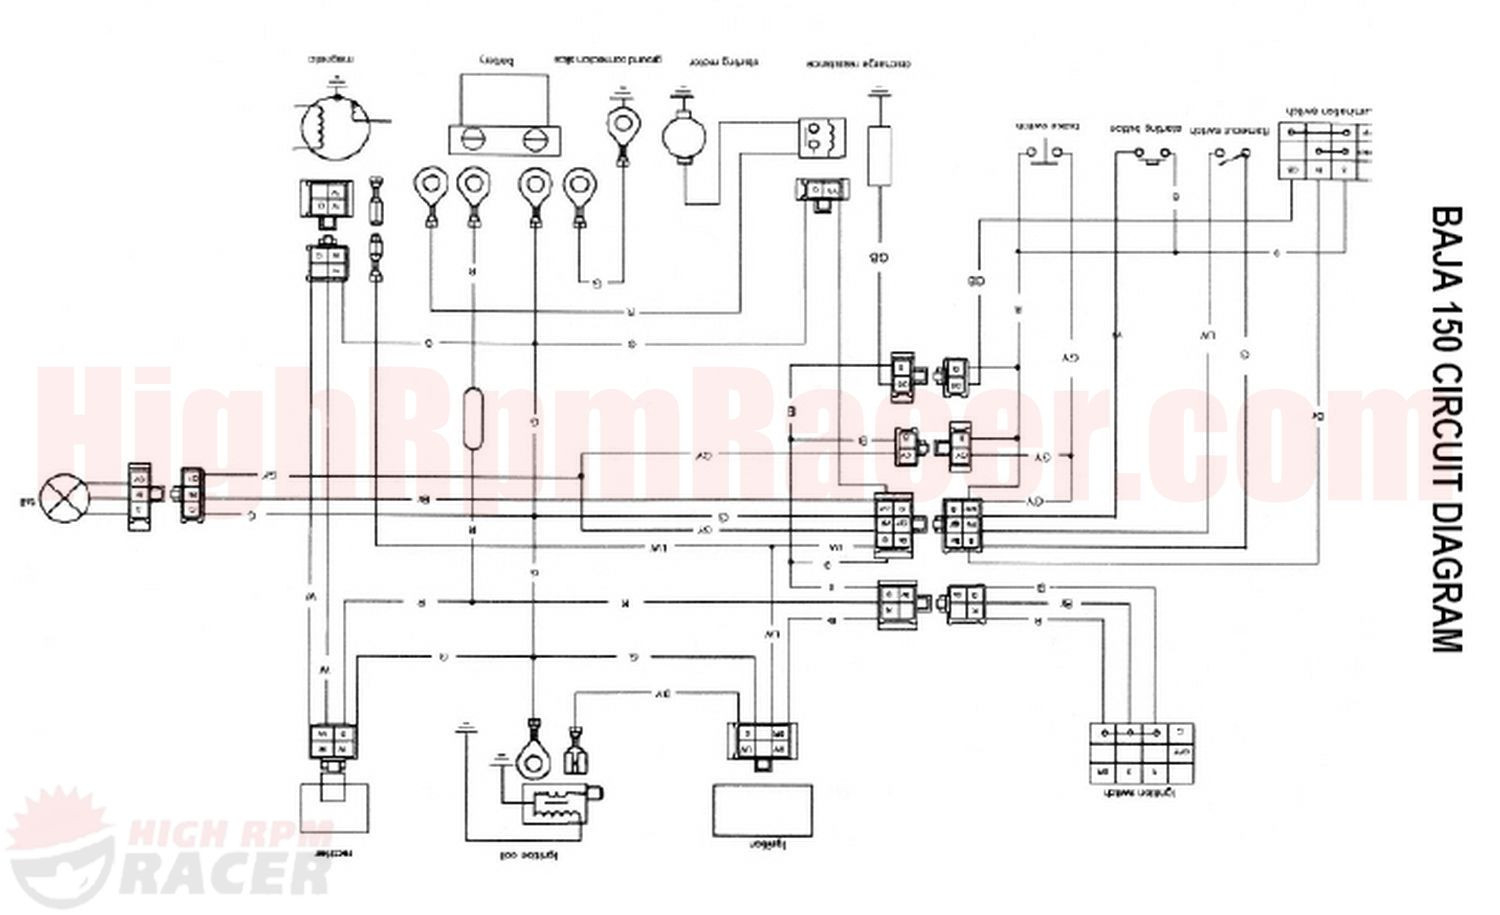 coolster 125cc wiring diagram schematics wiring diagrams u2022 rh marapolsa co coolster 70cc wiring diagram coolster 125cc wiring diagram